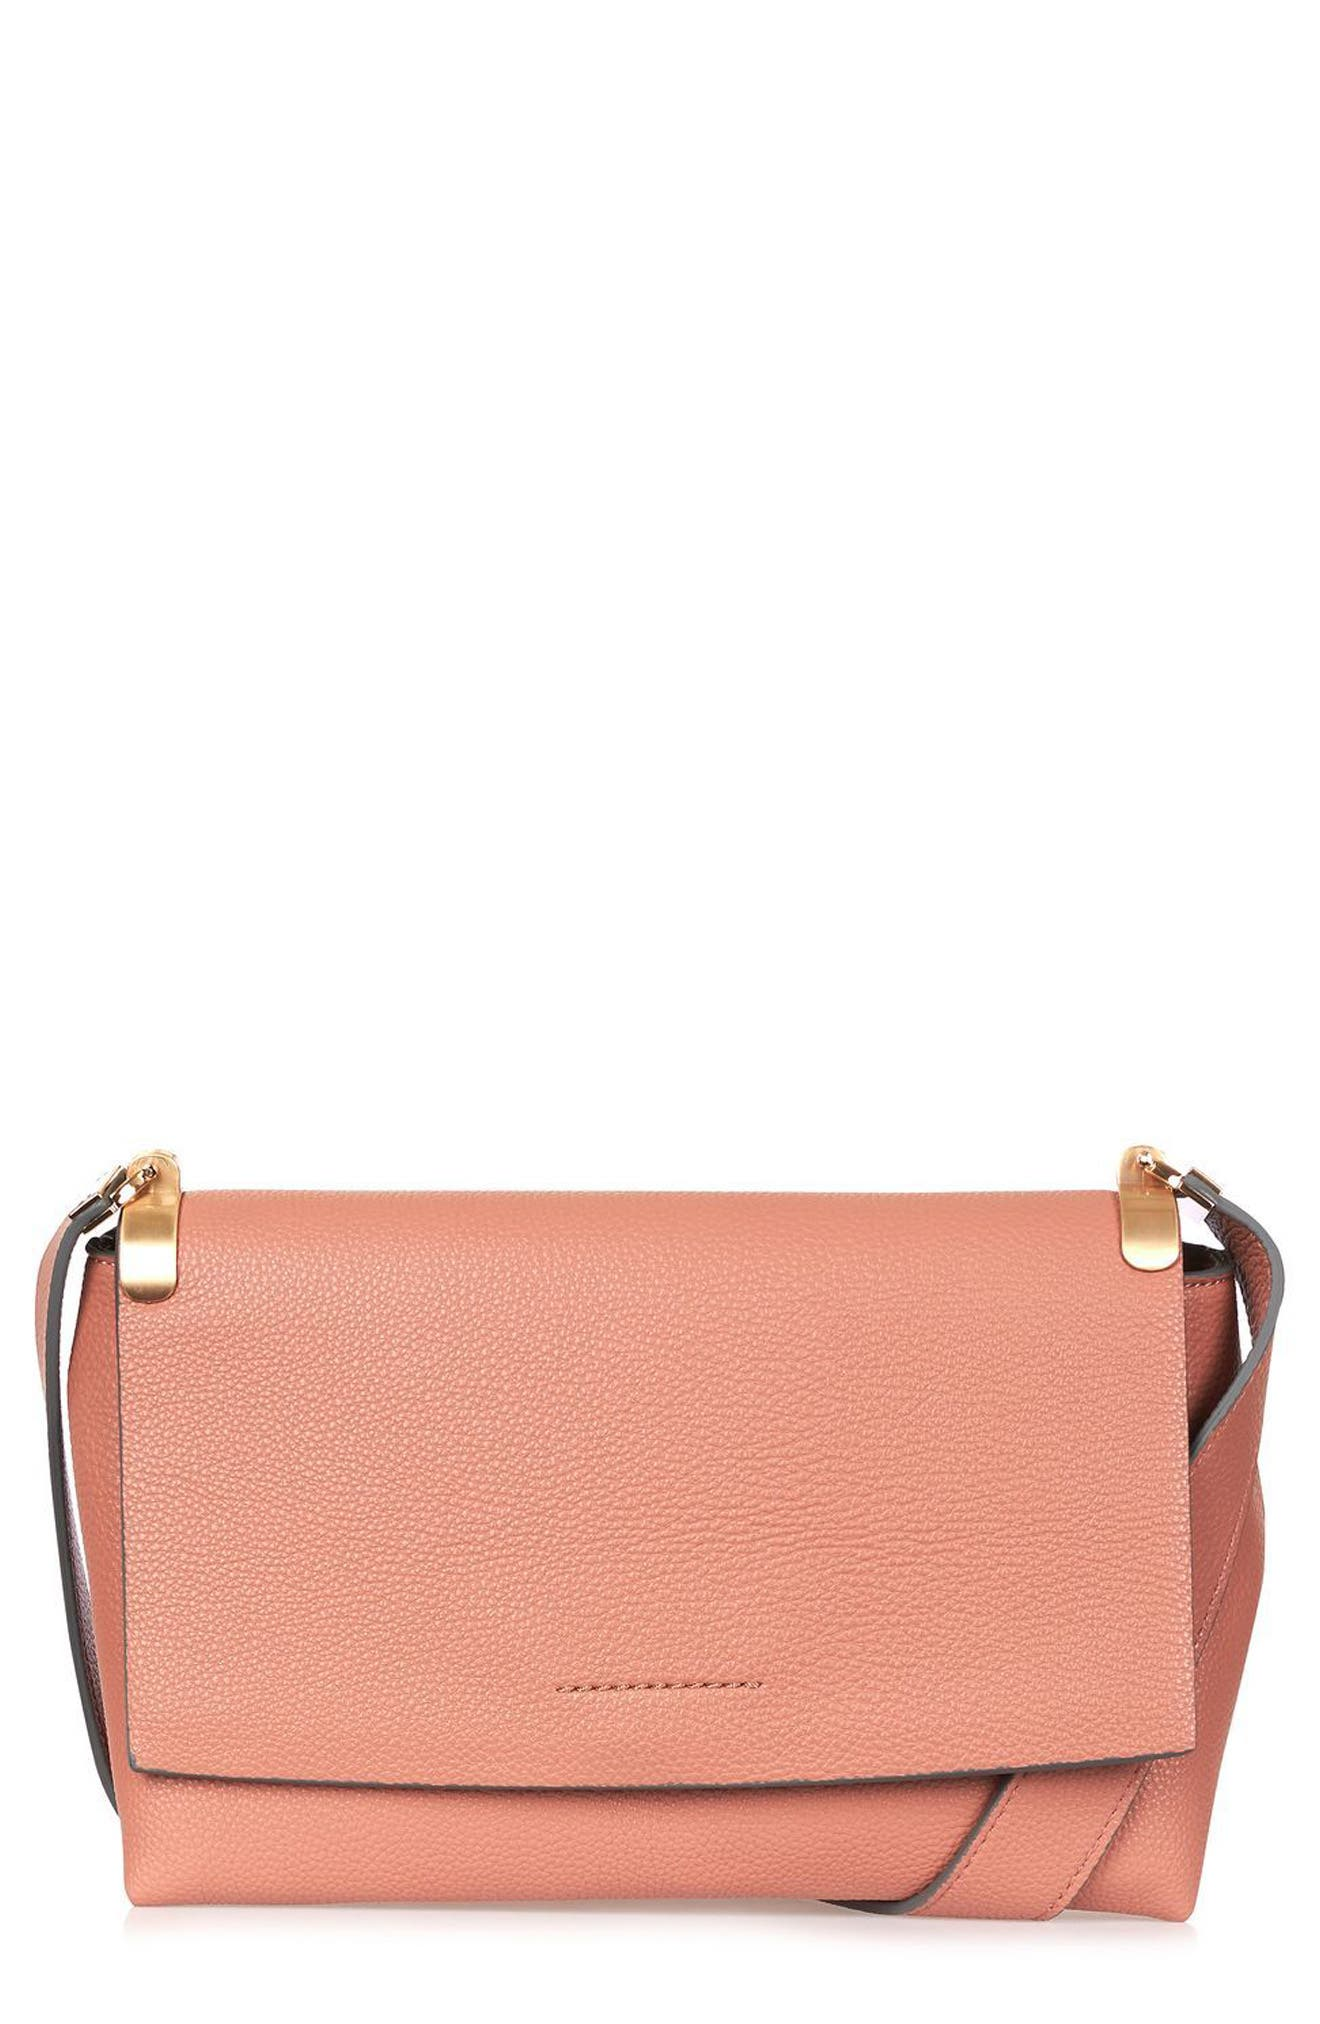 Olney Faux Leather Crossbody,                             Main thumbnail 1, color,                             Pink